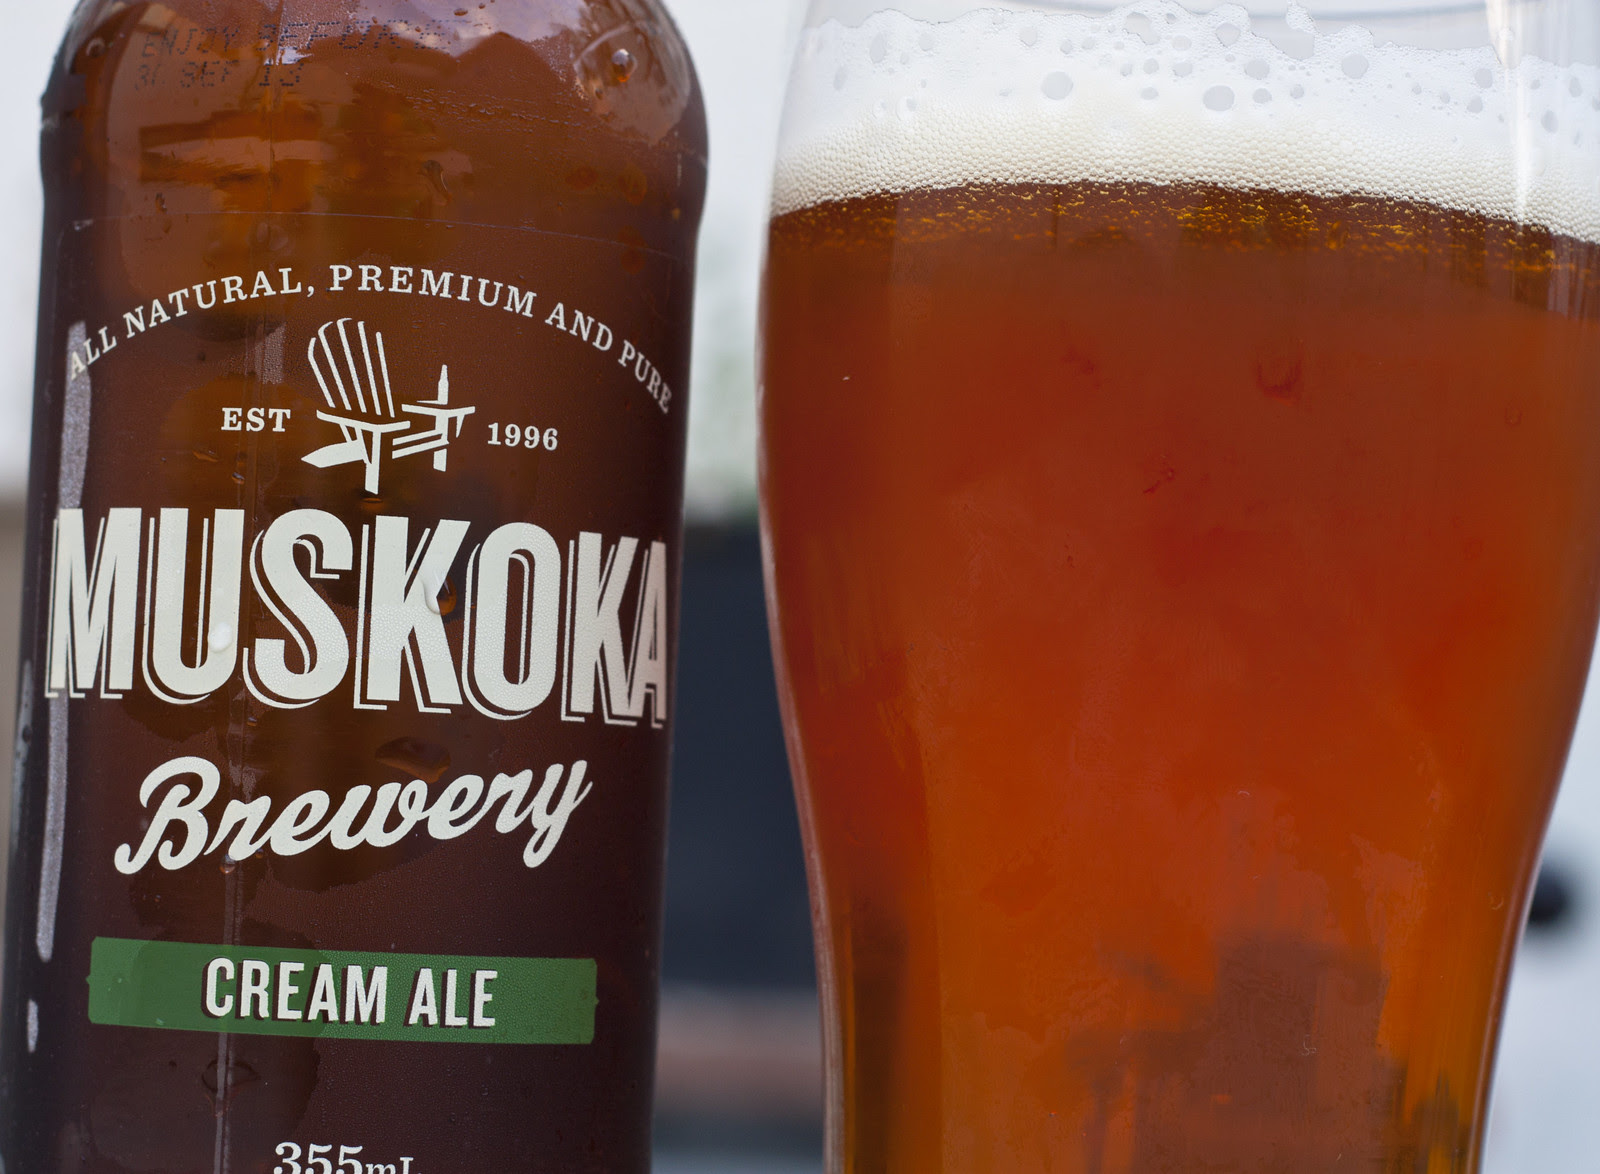 Review: Muskoka Cream Ale by Cody La Bière